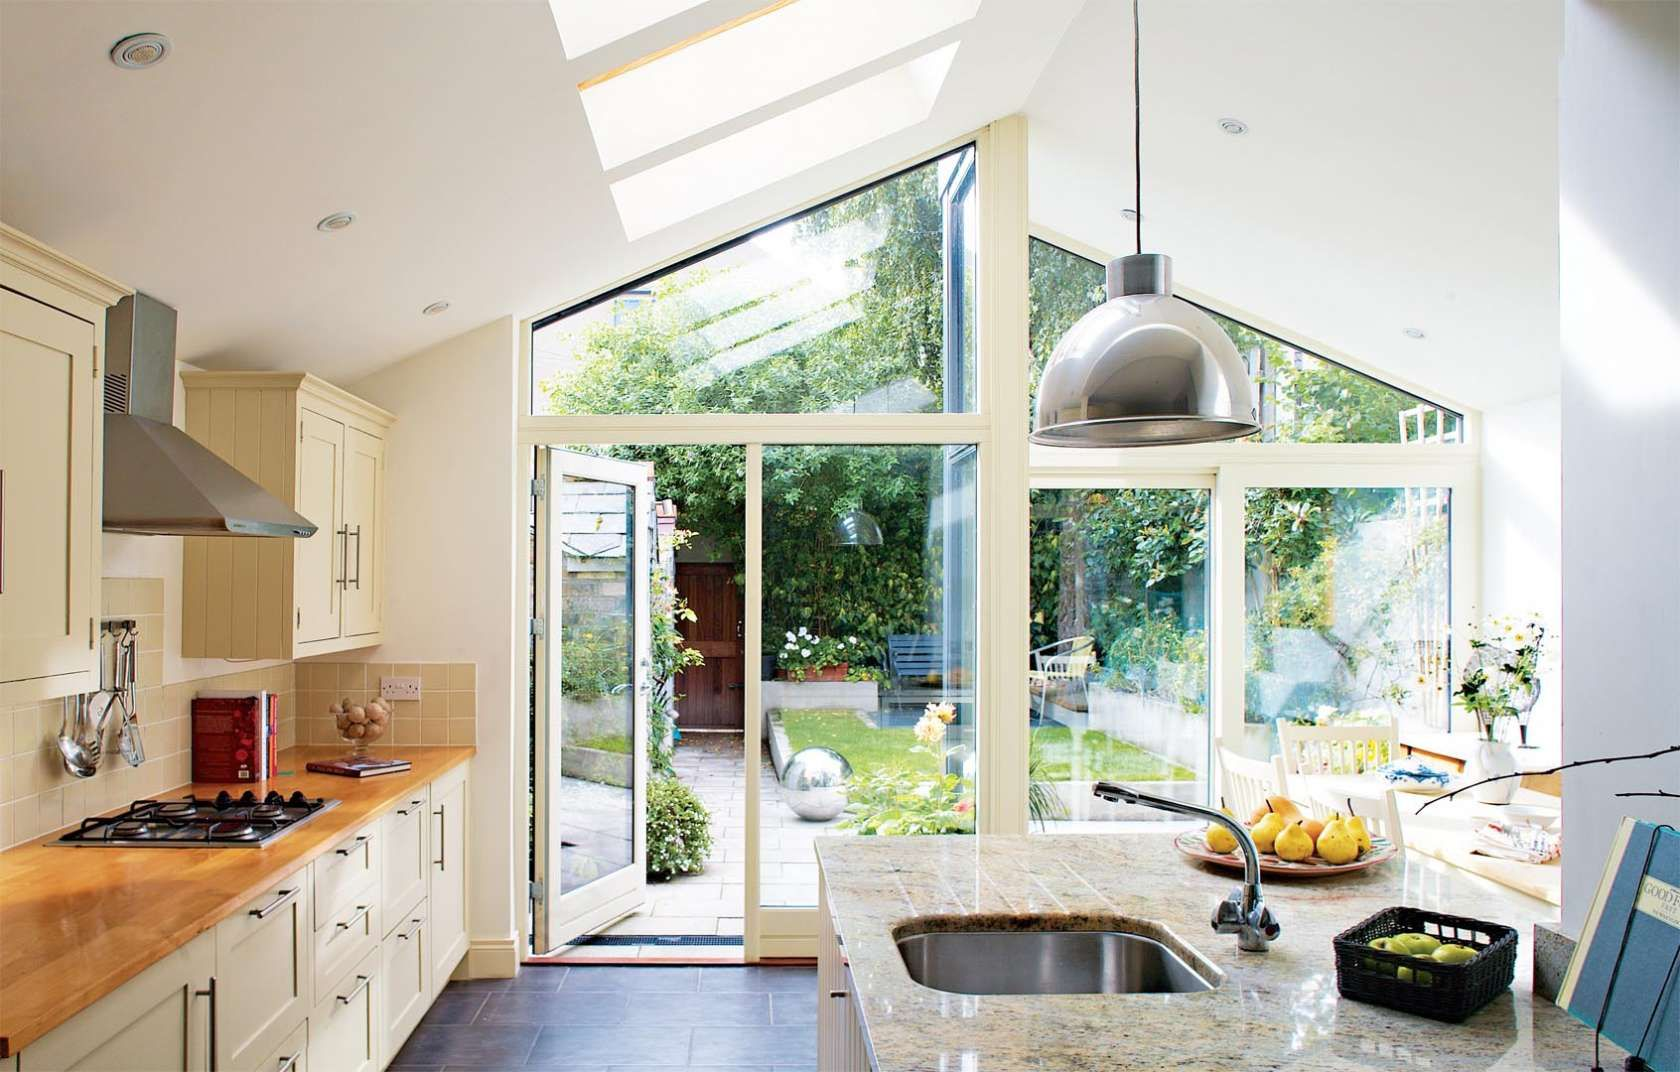 terrace house kitchen design ideas. terraced house kitchen extension  Google Search Kitchen